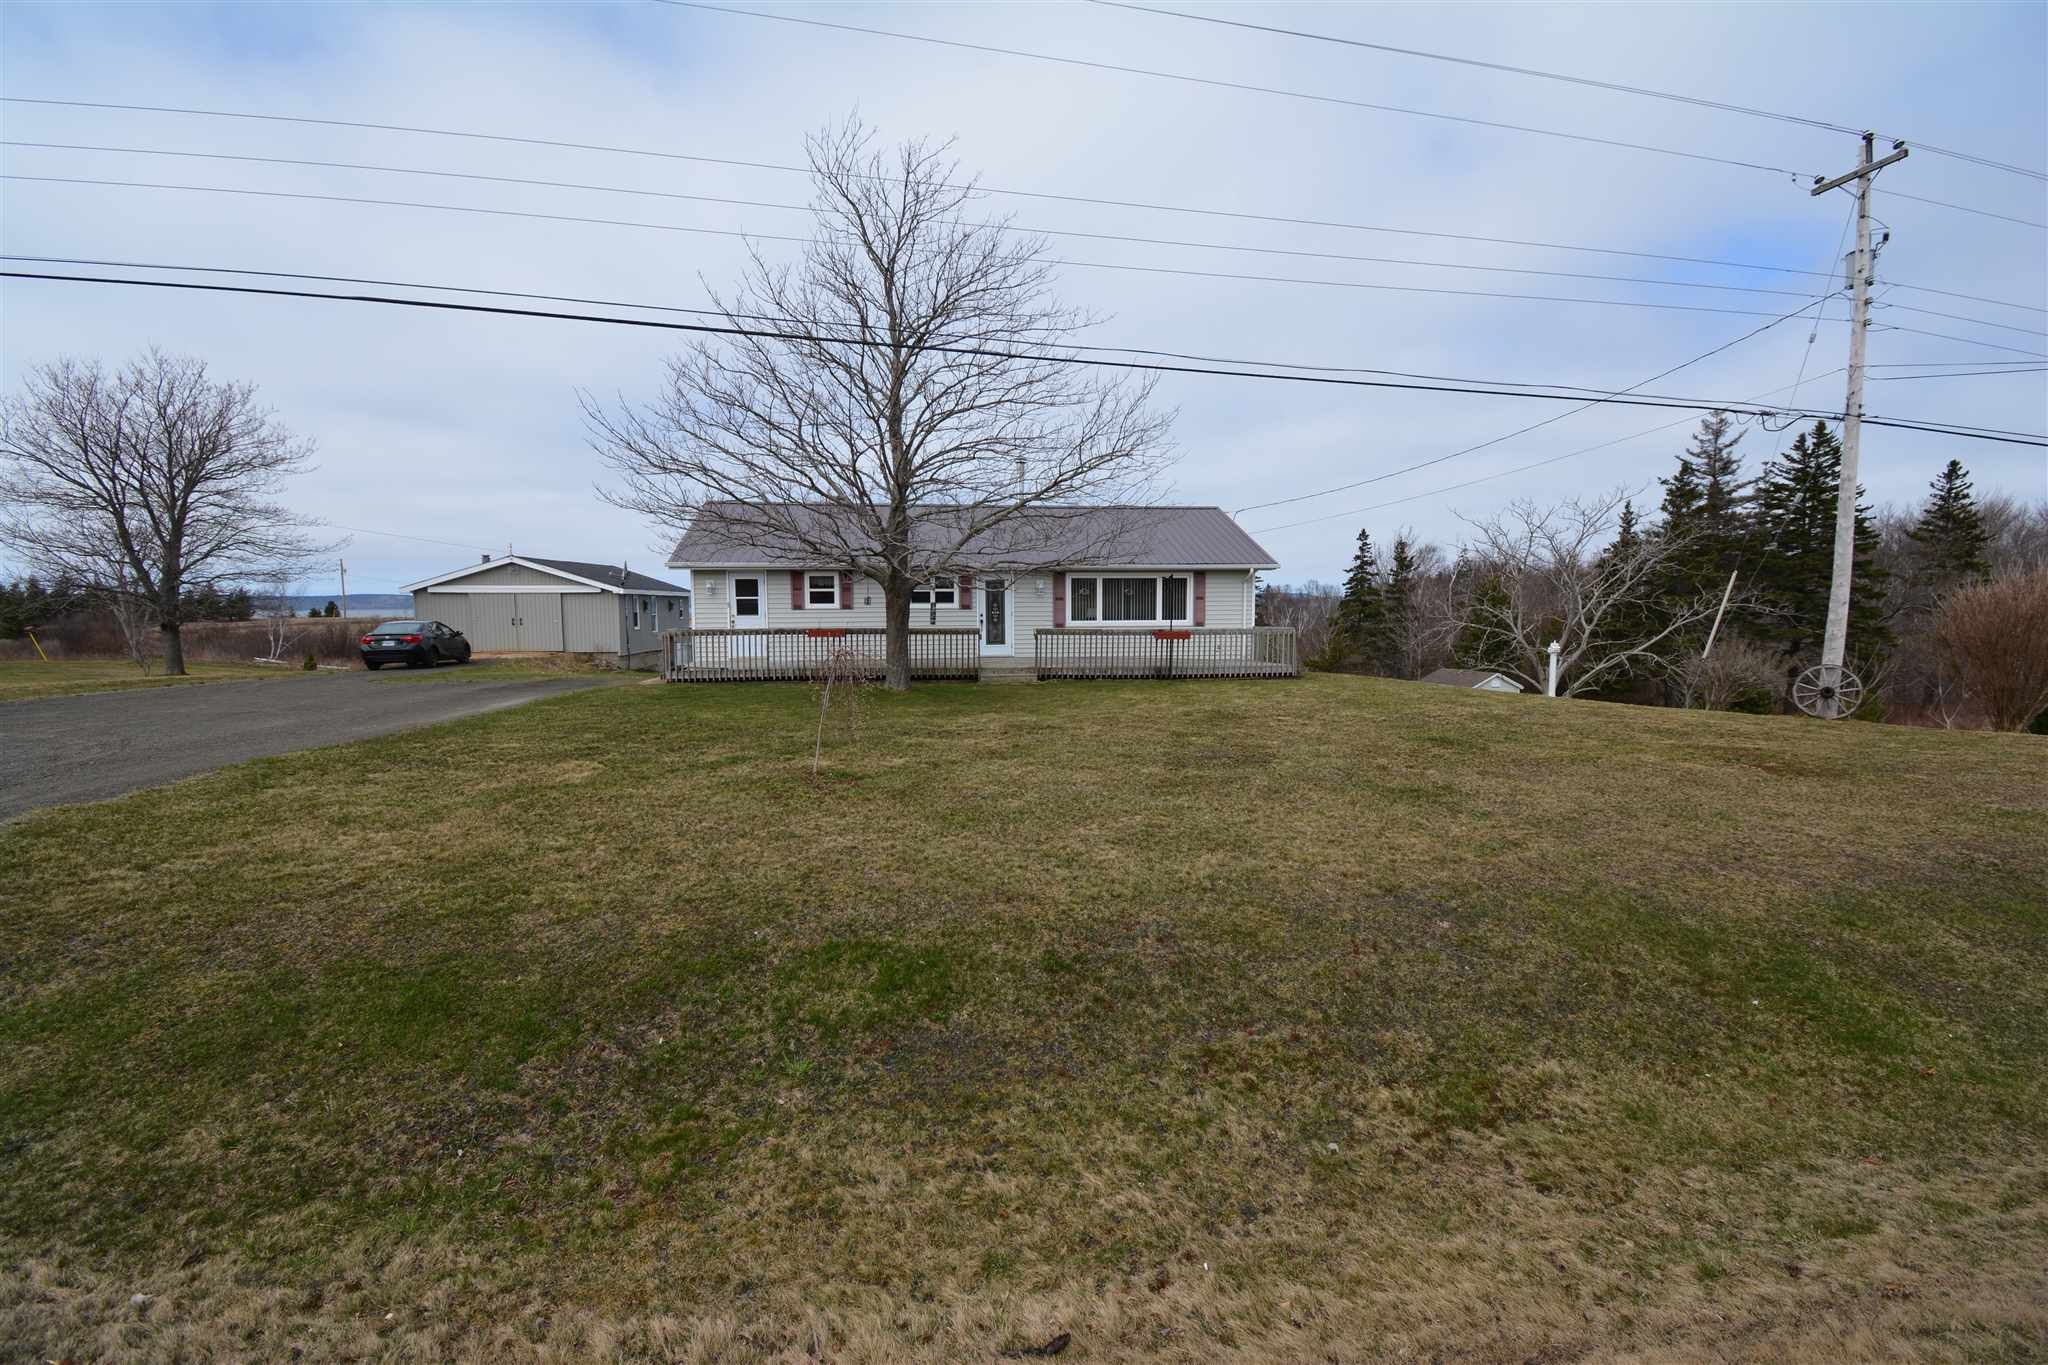 Main Photo: 6893 HIGHWAY 101 in Gilberts Cove: 401-Digby County Residential for sale (Annapolis Valley)  : MLS®# 202107785